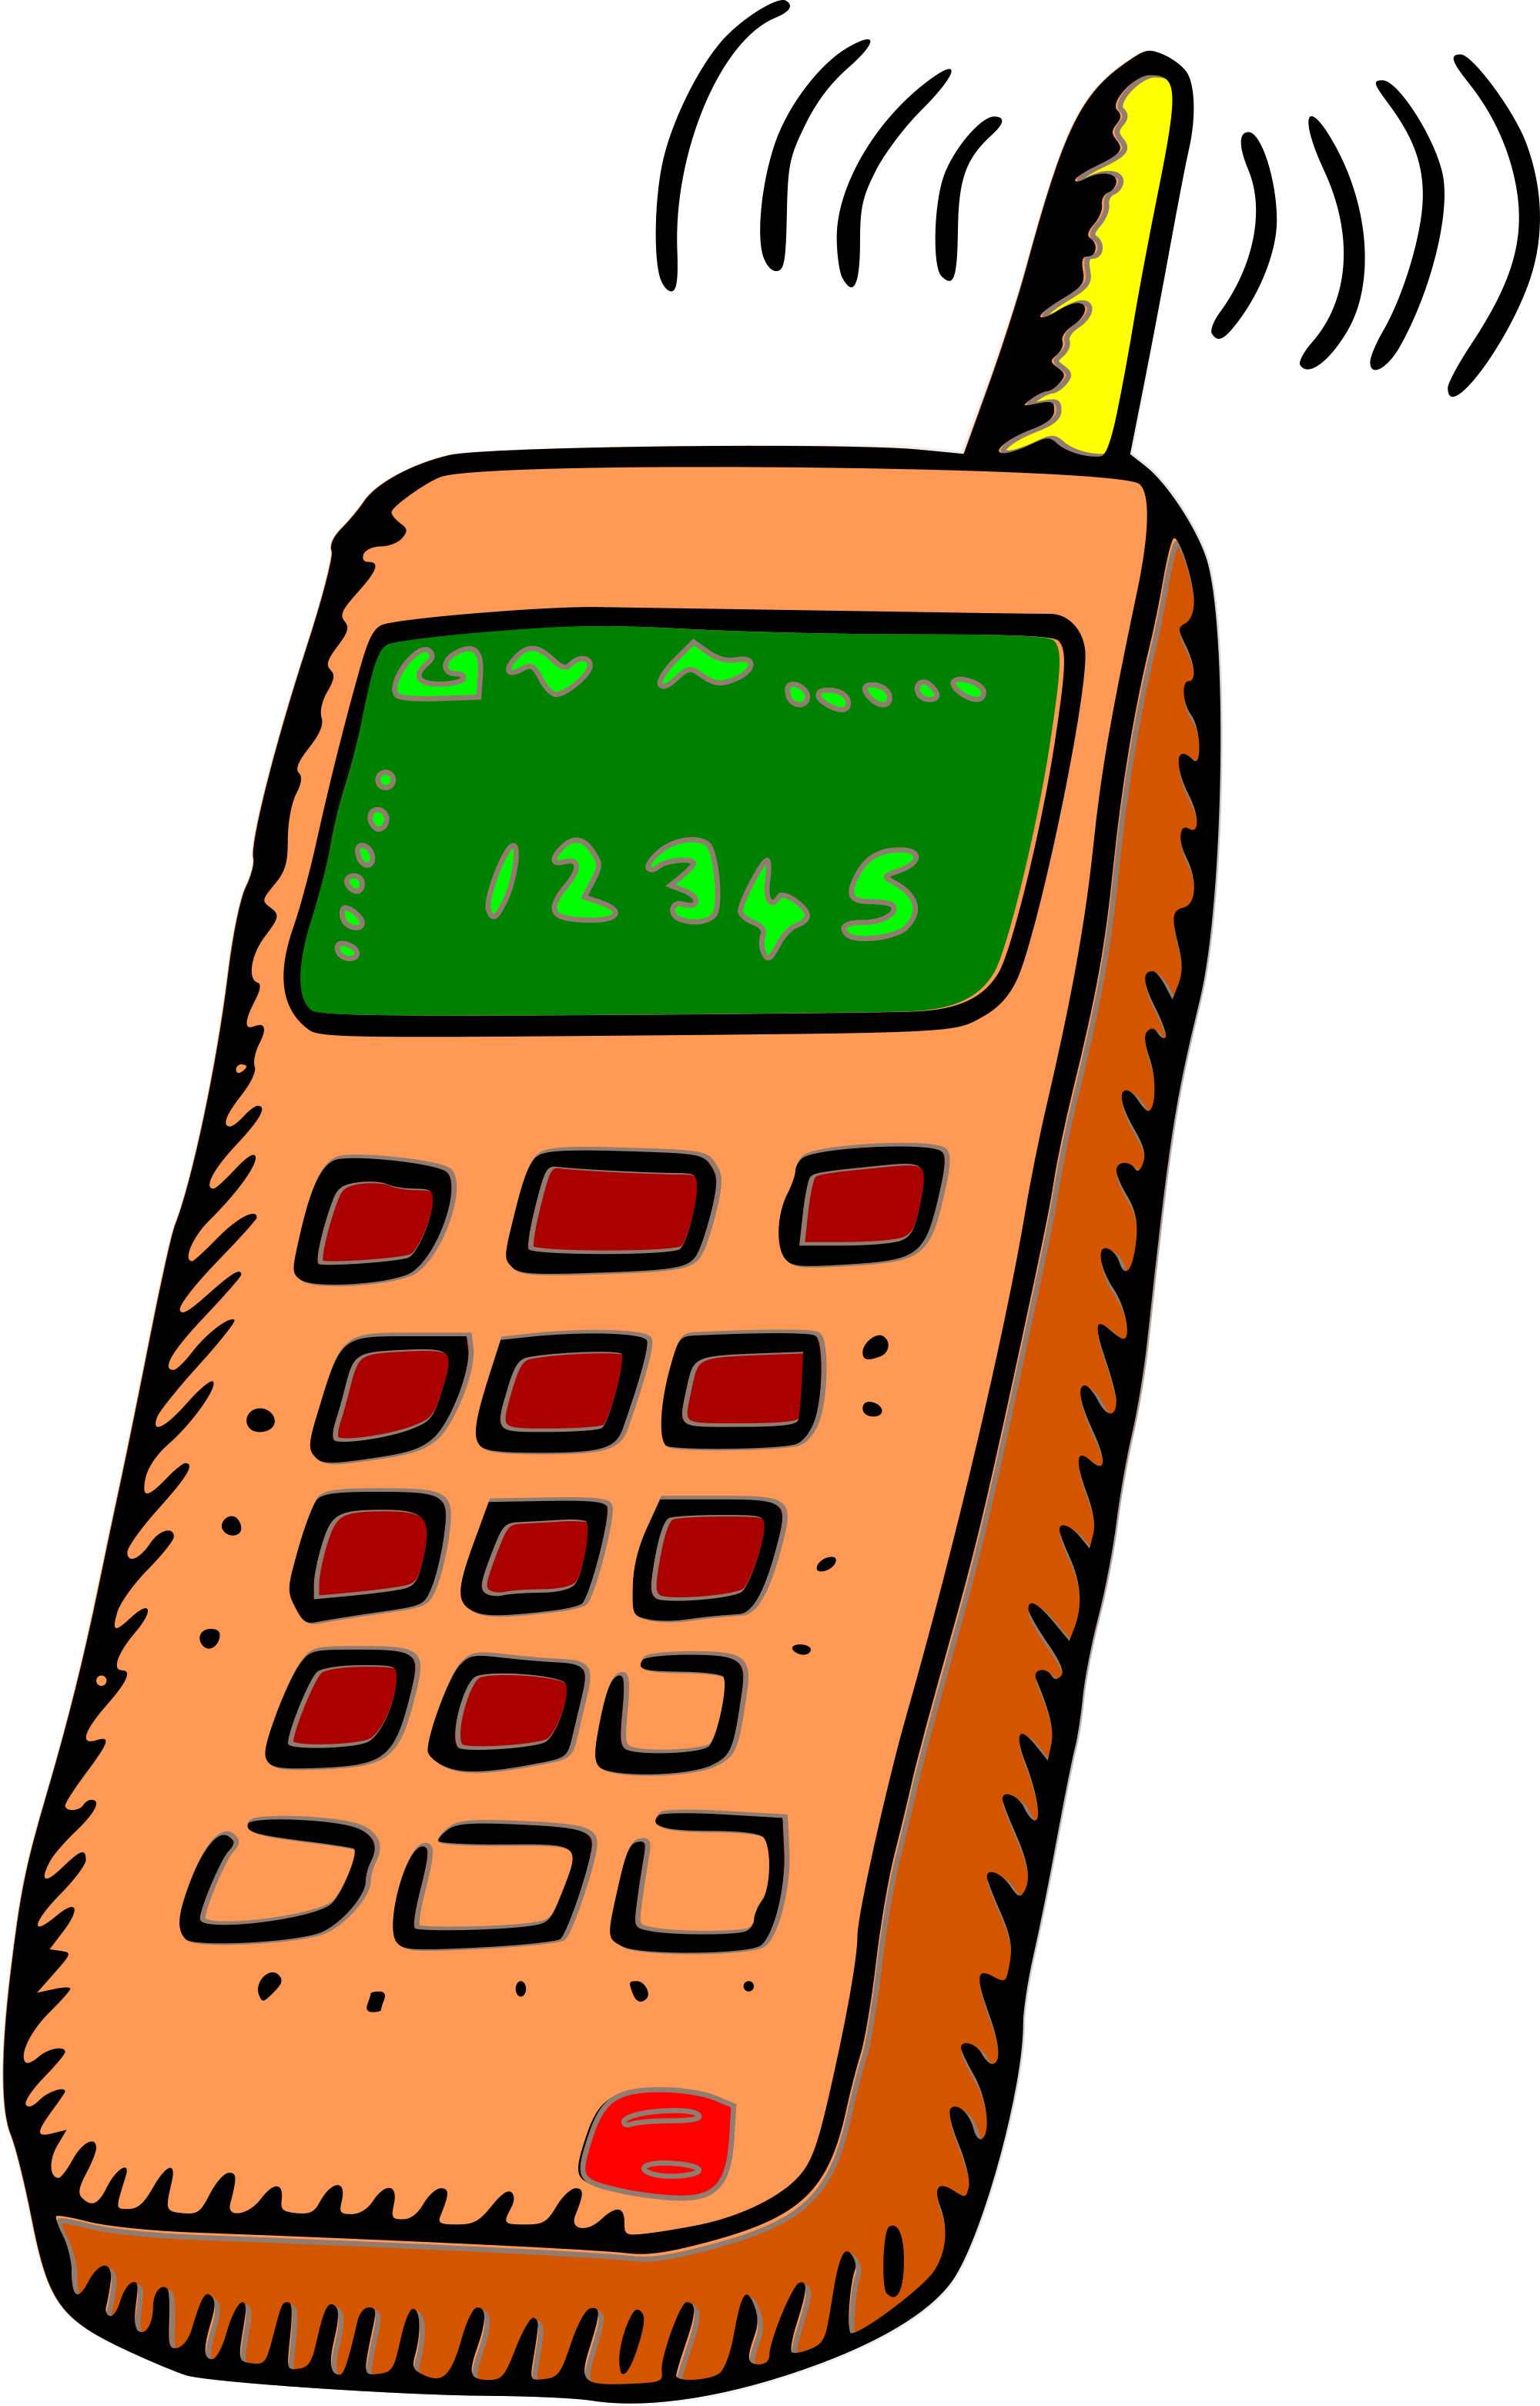 Phone clipart mobile phone user. Customer service support x